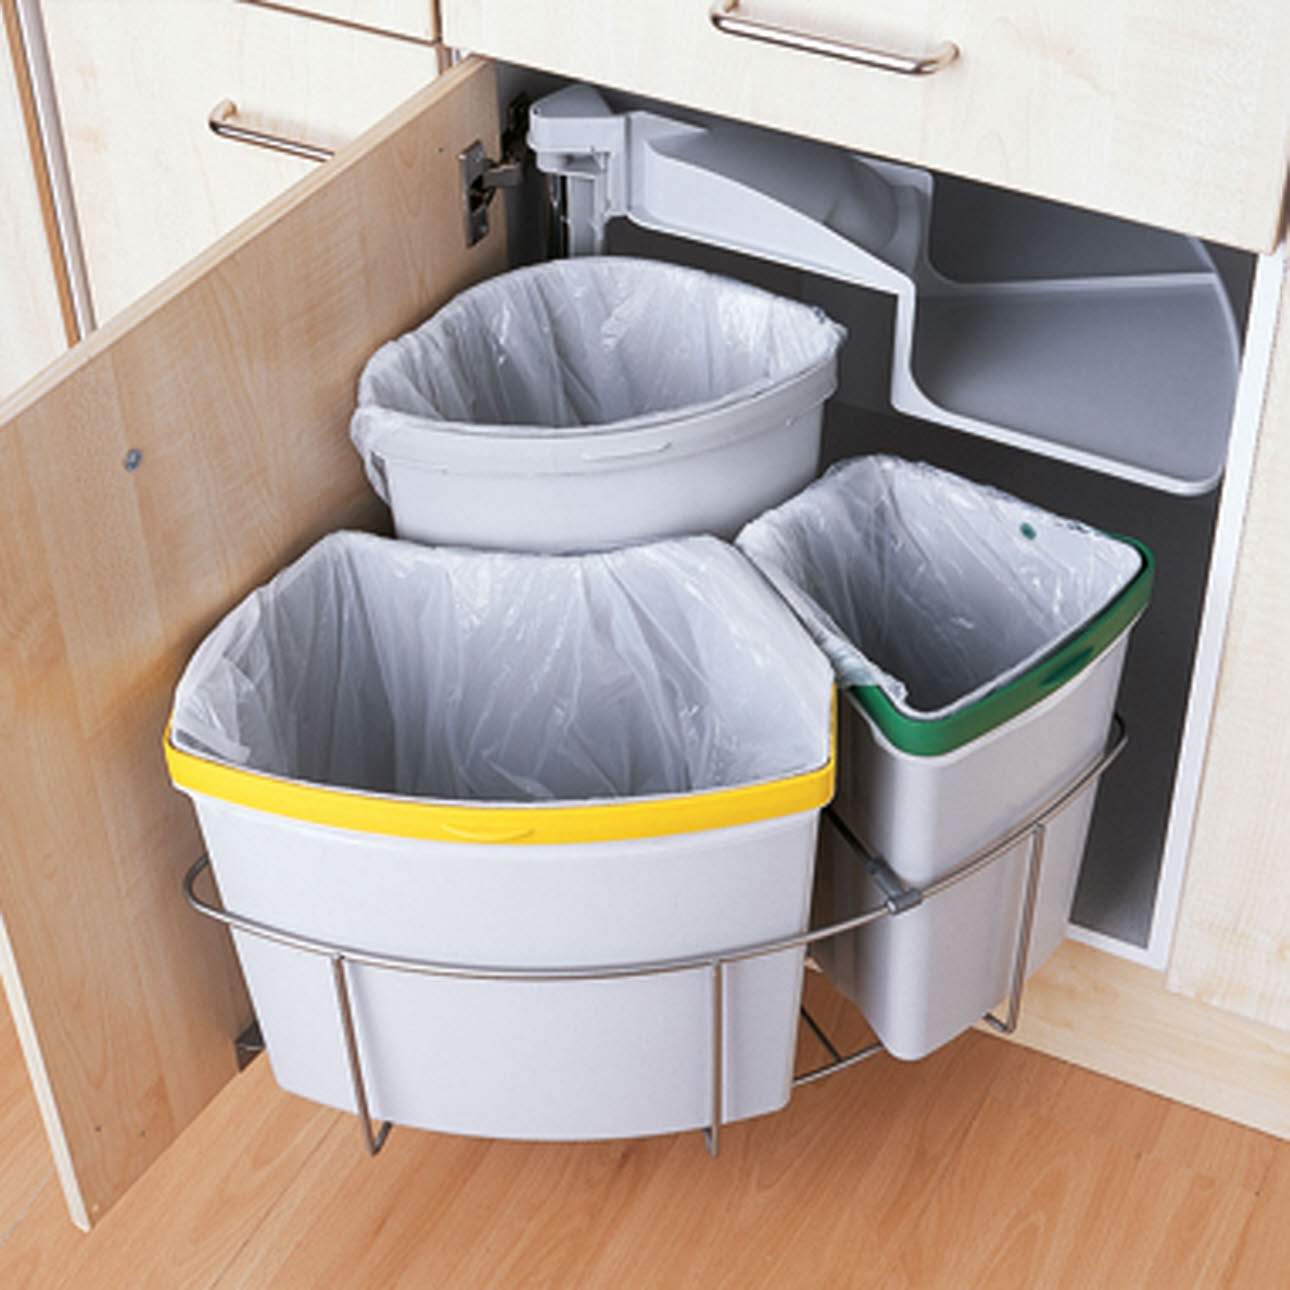 Three fitted waste bins inside kitchen unit, door open